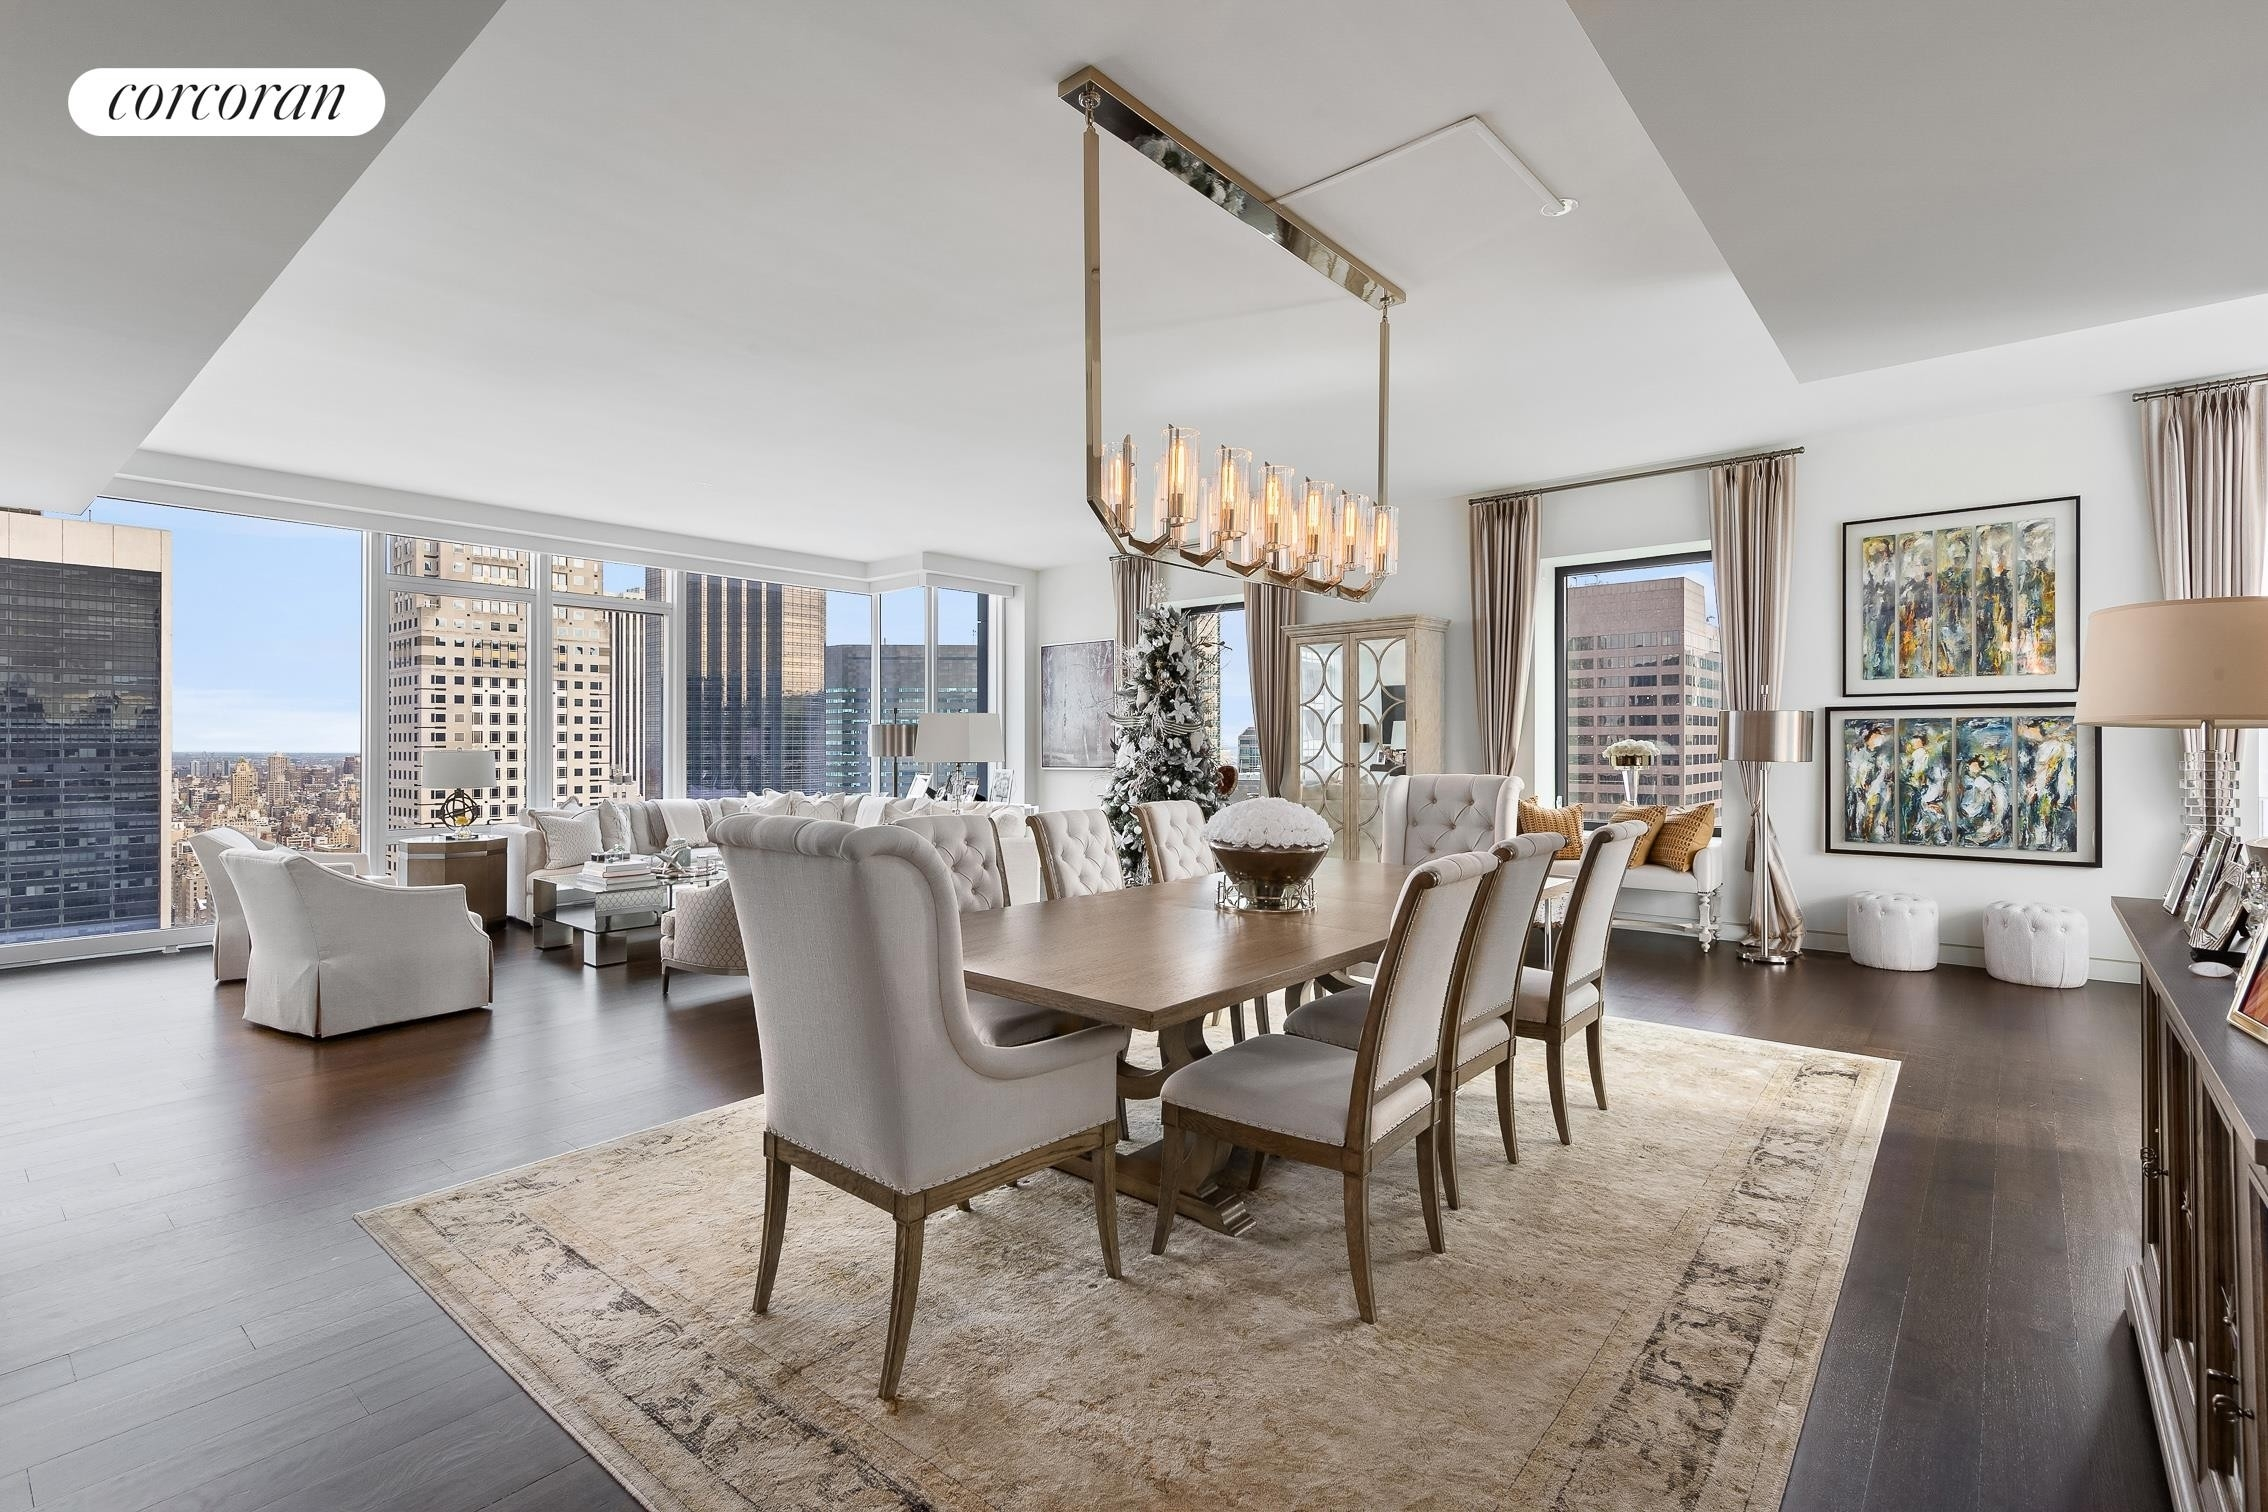 Property at BACCARAT HOTEL & RESIDENCES, 20 West 53rd St, 43FLR Midtown West, New York, NY 10019